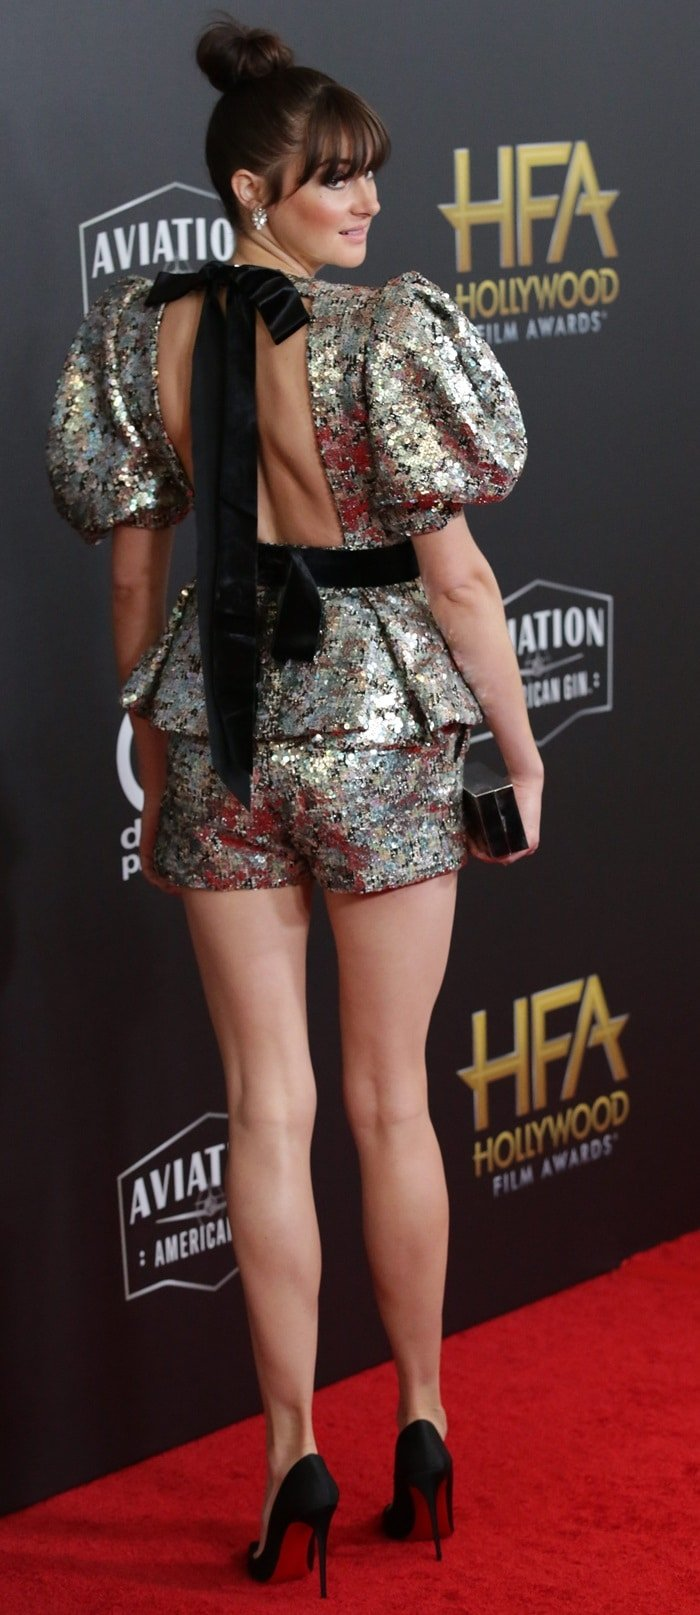 Shailene Woodley with legs for days at the 2018 Hollywood Film Awards